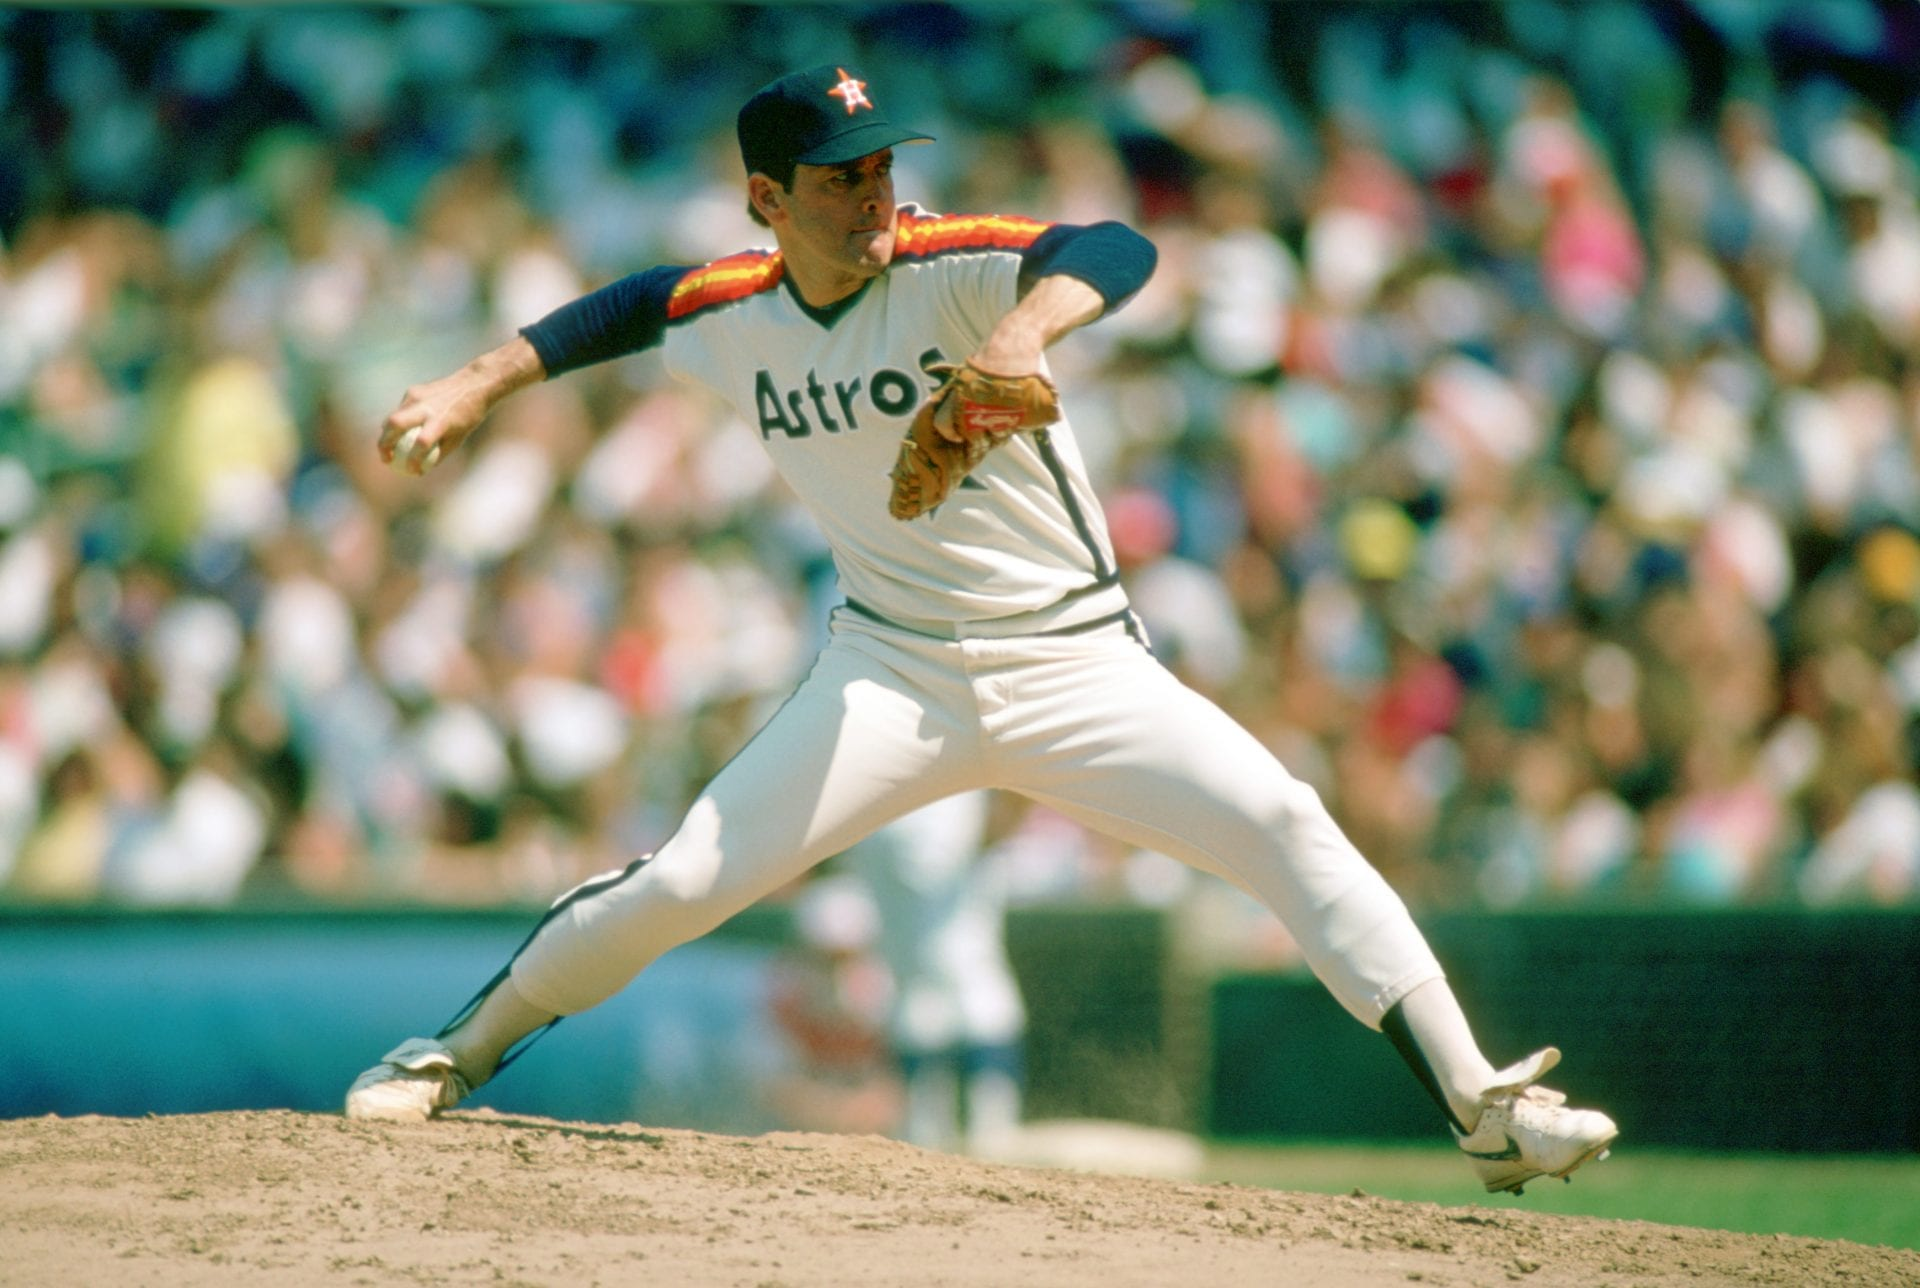 Nolan Ryan career strikeout leader, Houston Astros